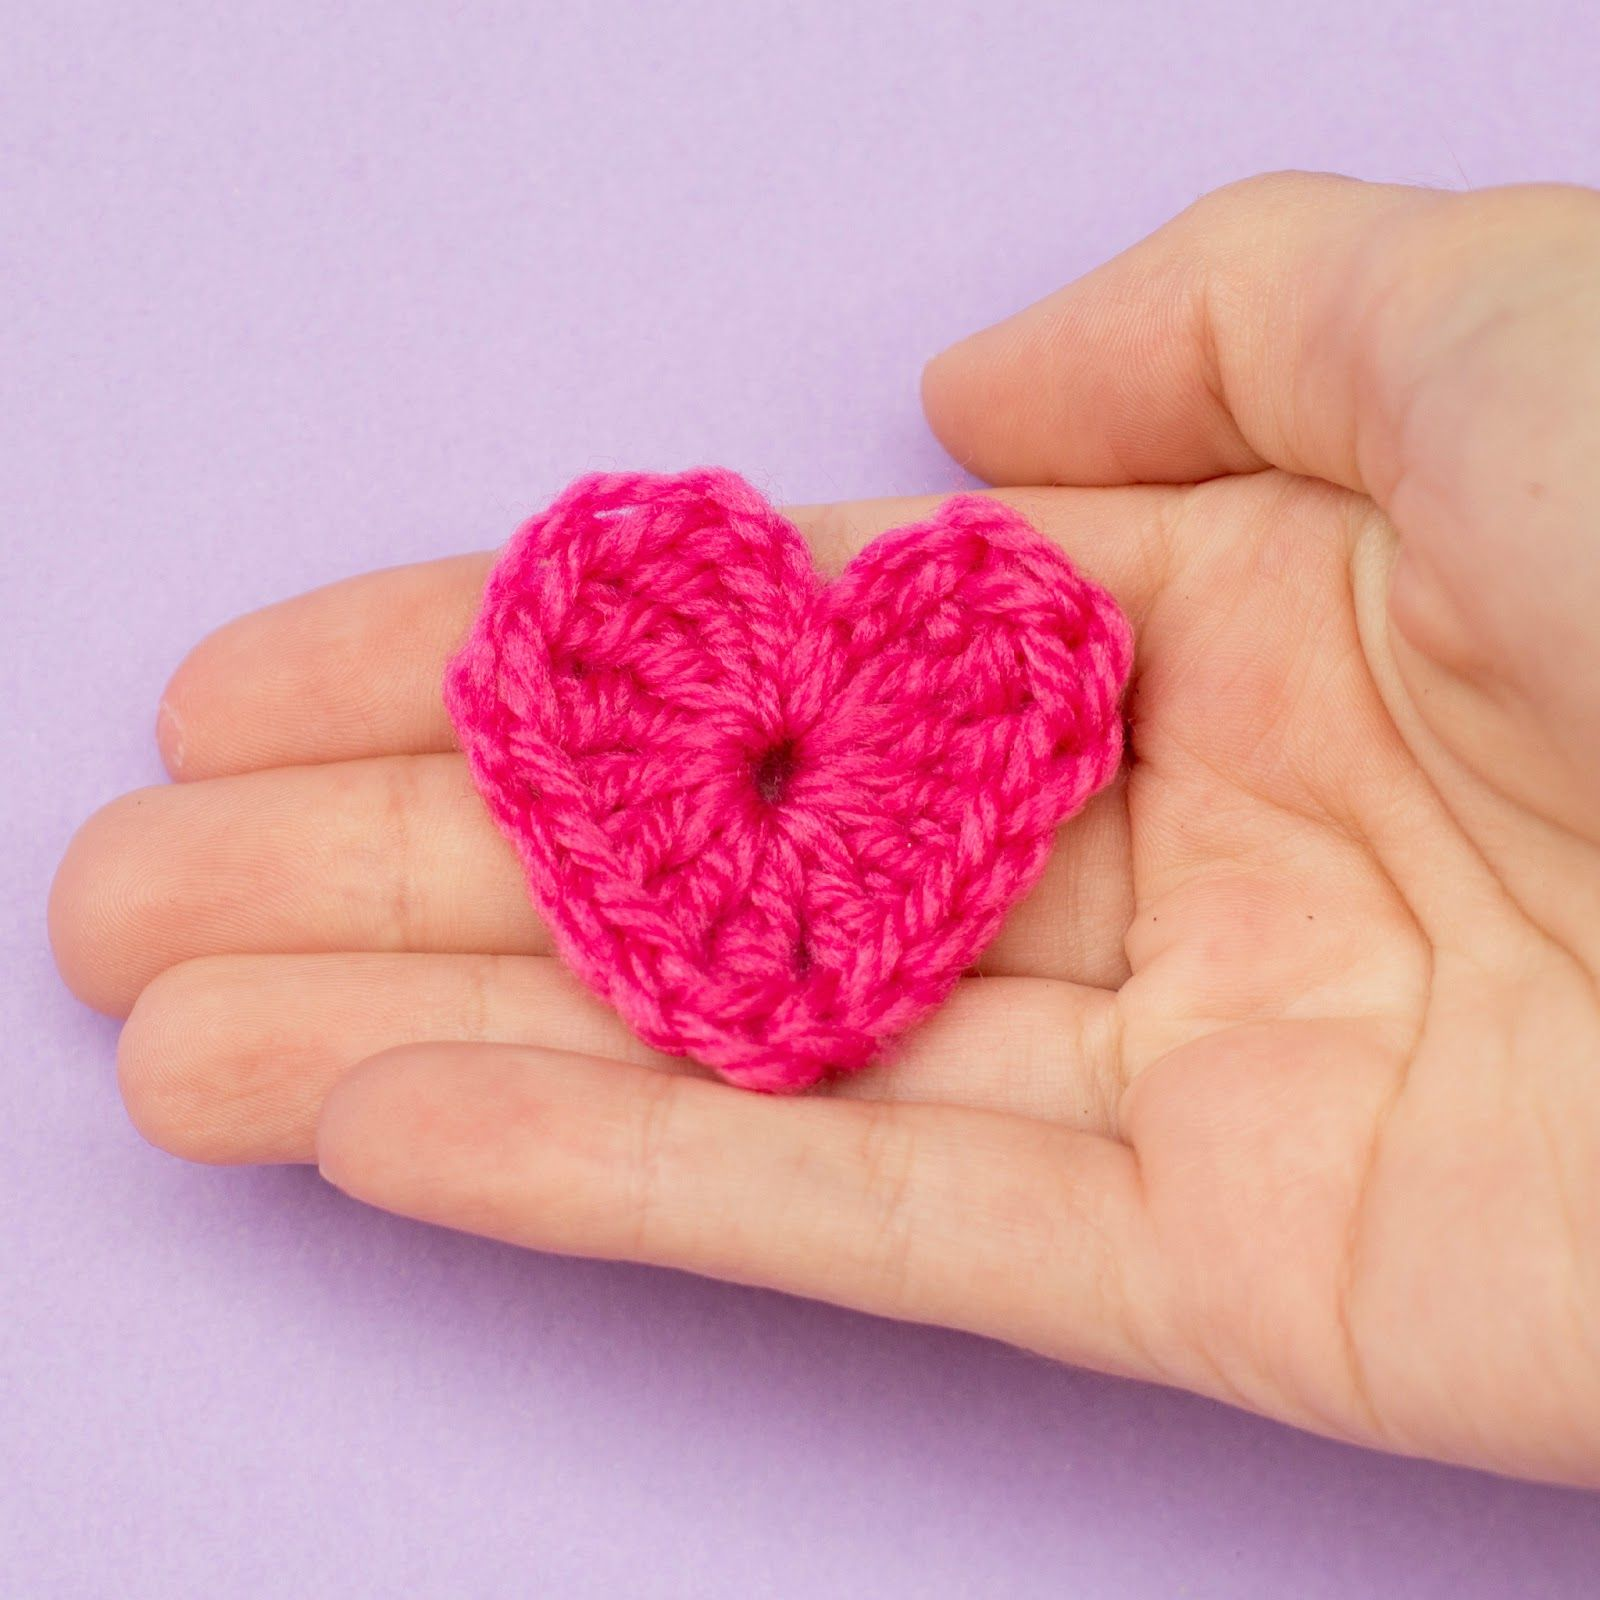 Easy heart crochet pattern via hopeful honey amigurumi easy heart crochet pattern via hopeful honey bankloansurffo Images